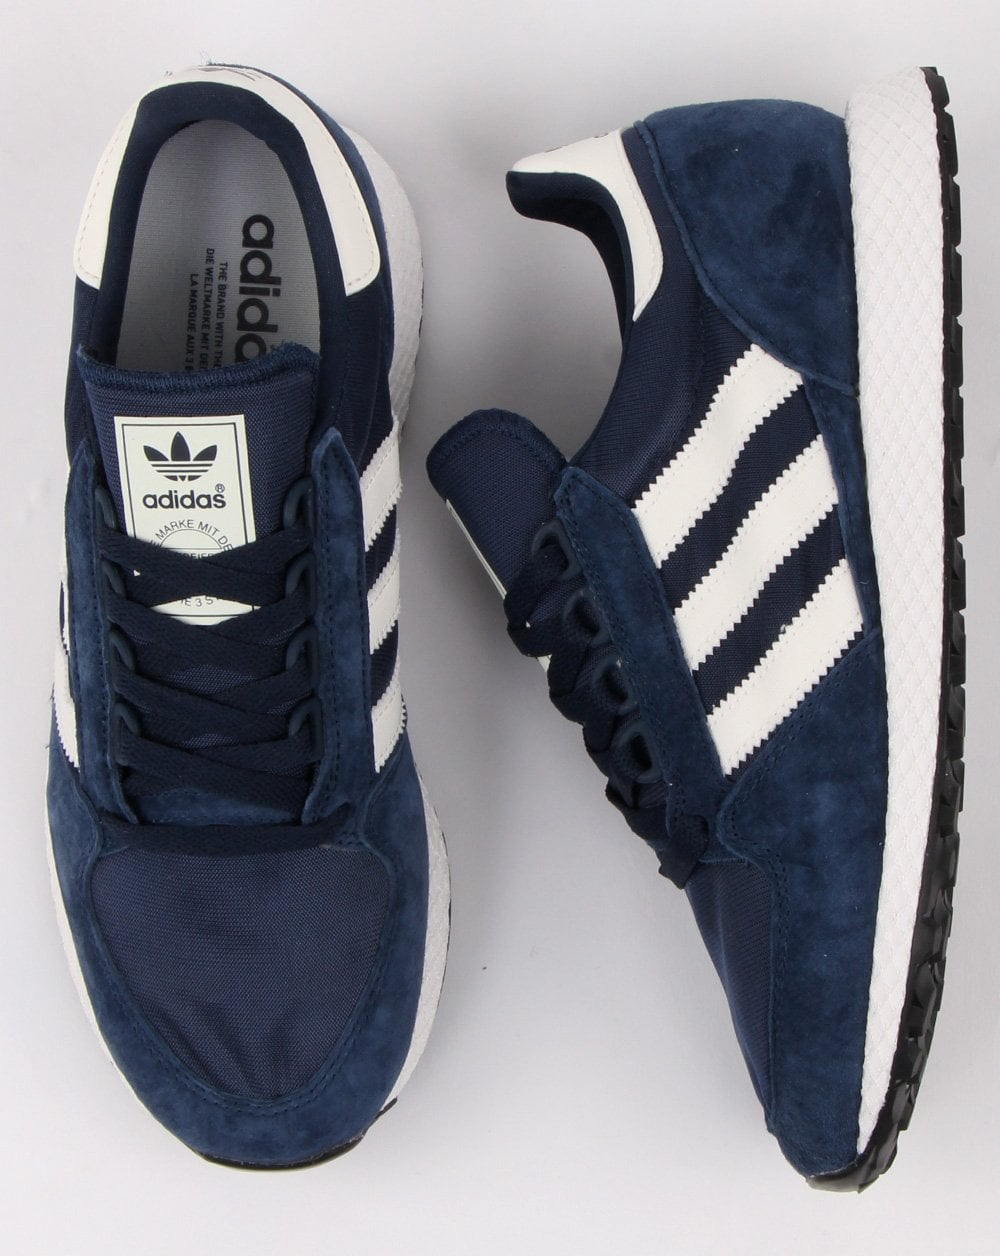 Adidas, Forest Grove, Trainers, Navy